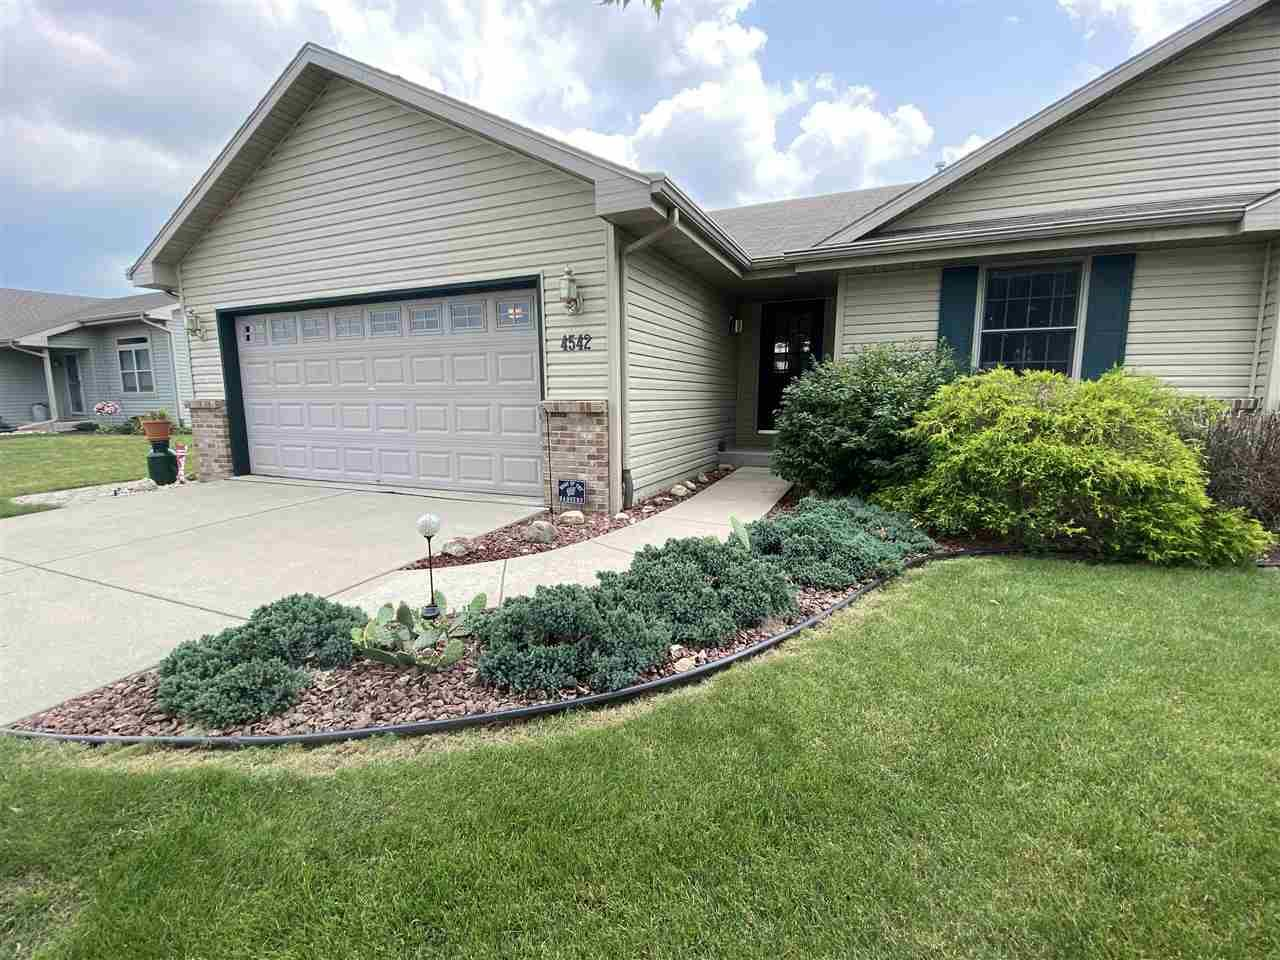 f_1887957 Our Listings at Best Realty of Edgerton